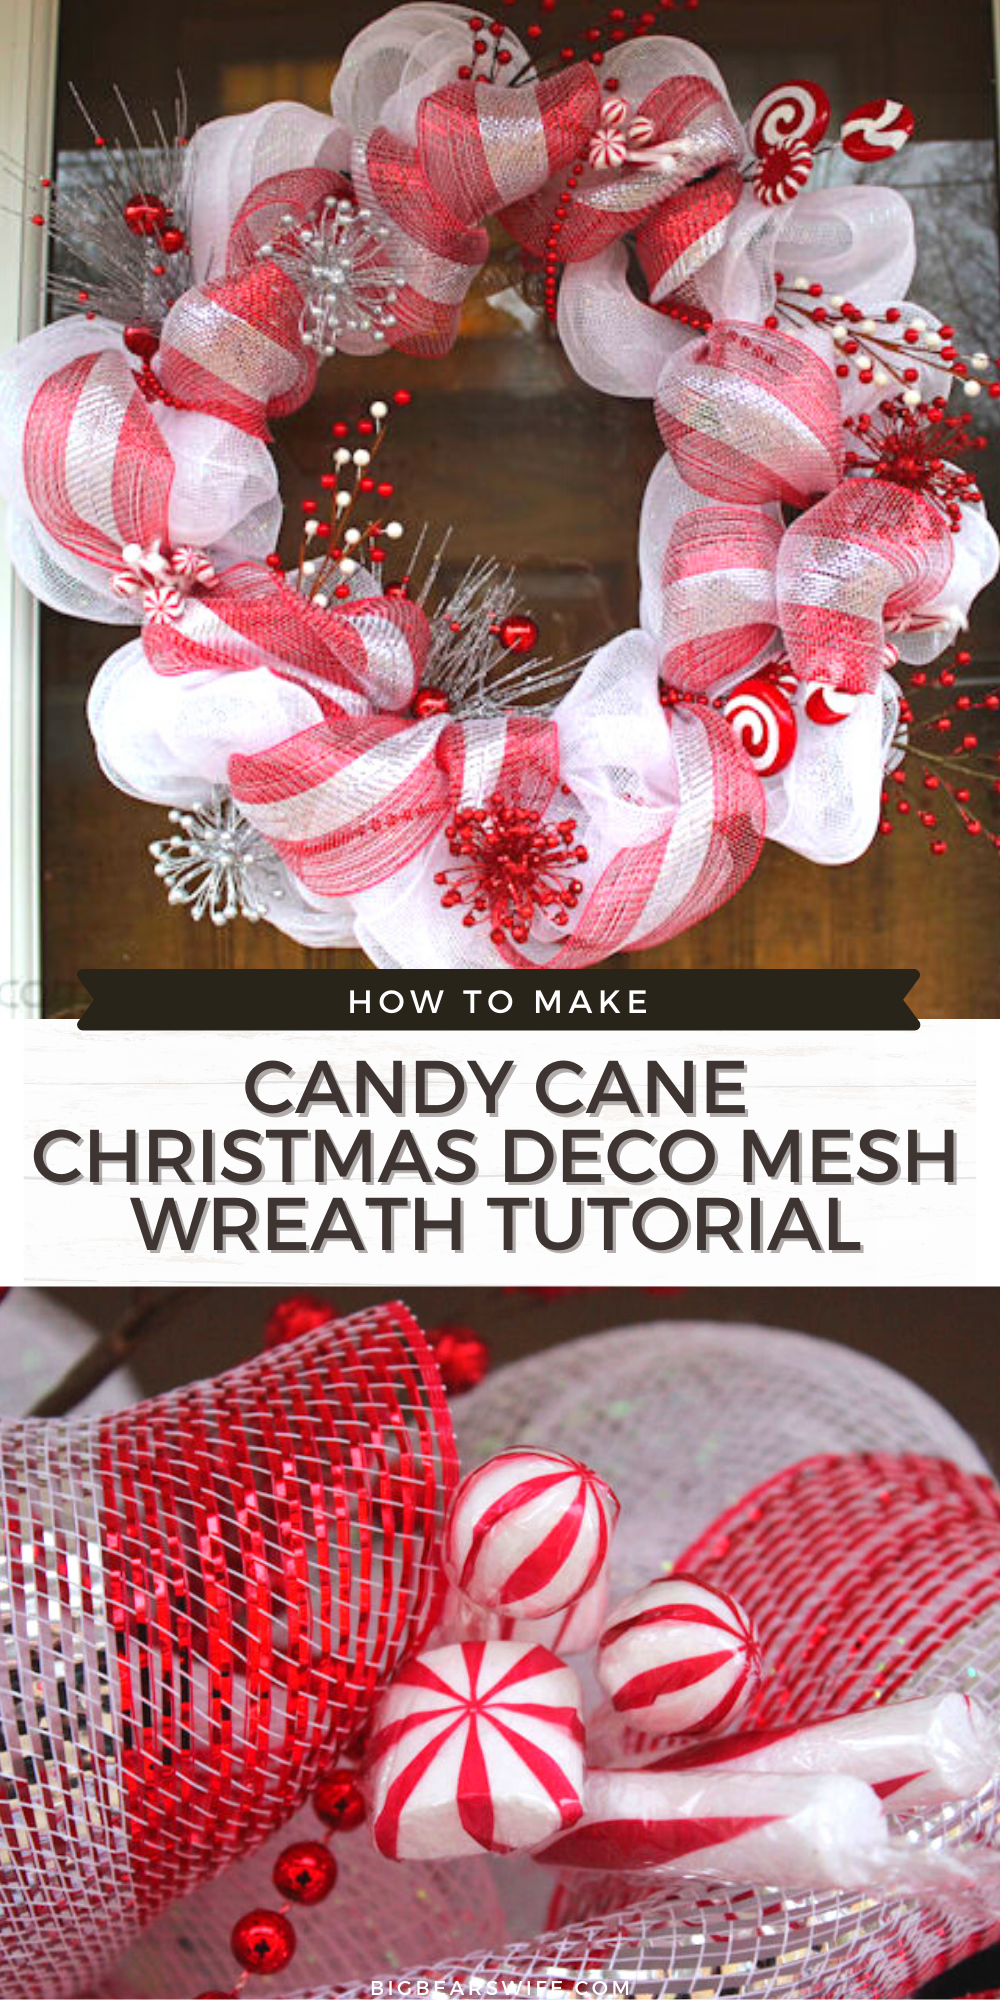 Candy Cane Christmas Deco Mesh Wreath - the perfect winter/Christmas Deco mesh Wreath - Plus a link to my step by step Deco Mesh Tutorial!!  Learn how to make this beautiful Candy Cane Christmas Deco Mesh Wreath for your home with this easy Candy Cane Christmas Deco Mesh Wreath Tutorial! via @bigbearswife